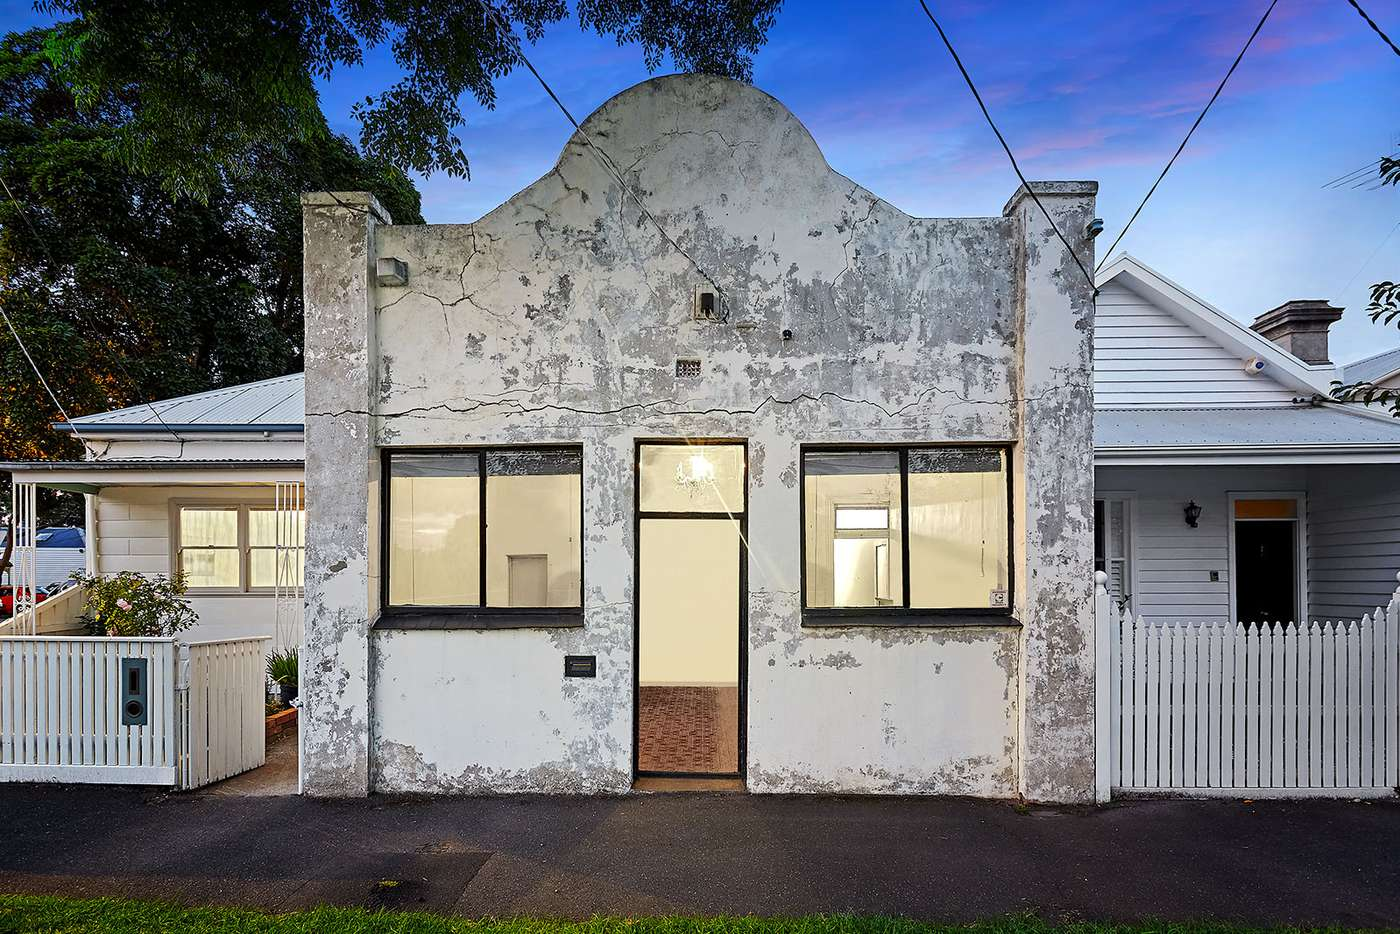 Main view of Homely house listing, 18 Mountain Street, South Melbourne VIC 3205